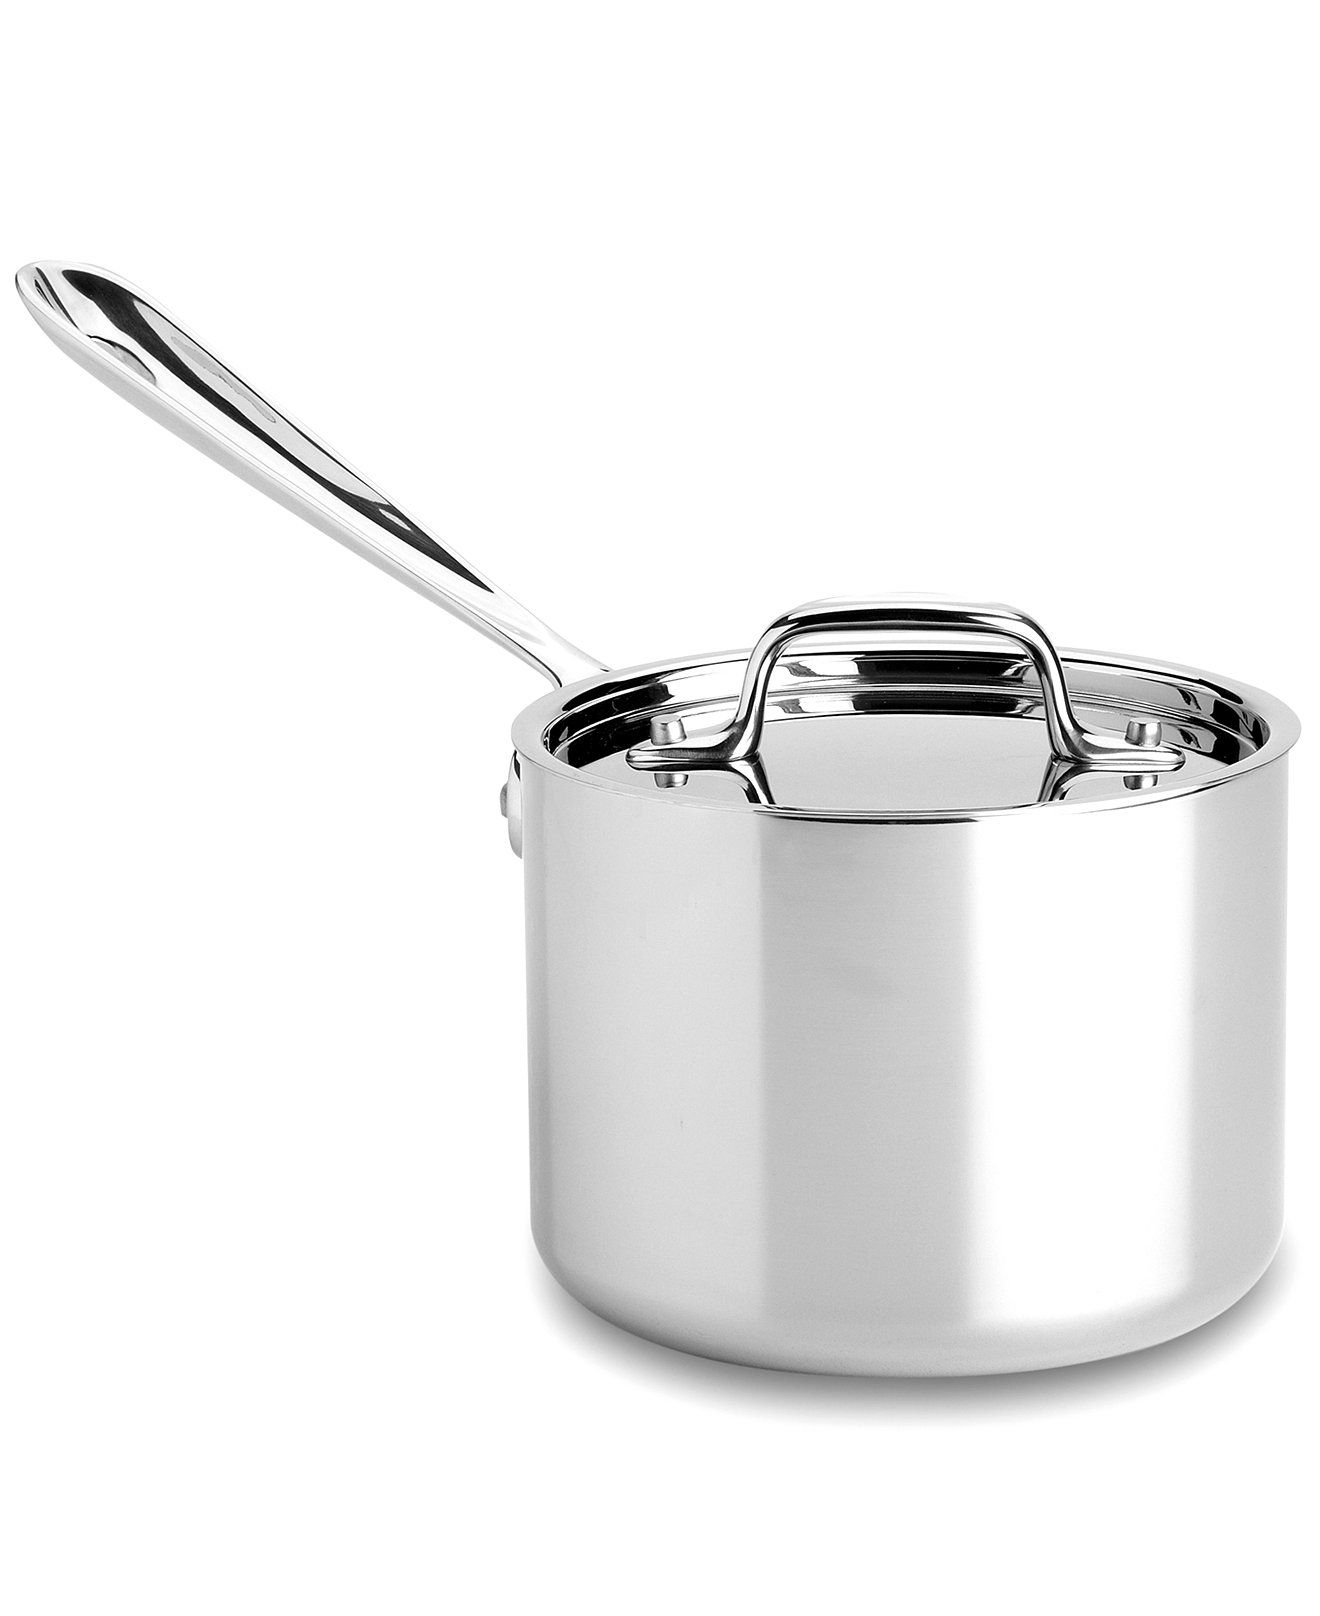 All Clad Stainless Steel 2 Qt Covered Saucepan Cookware Kitchen Macy S All Clad Stainless Steel Cookware Stainless Steel Dishwasher